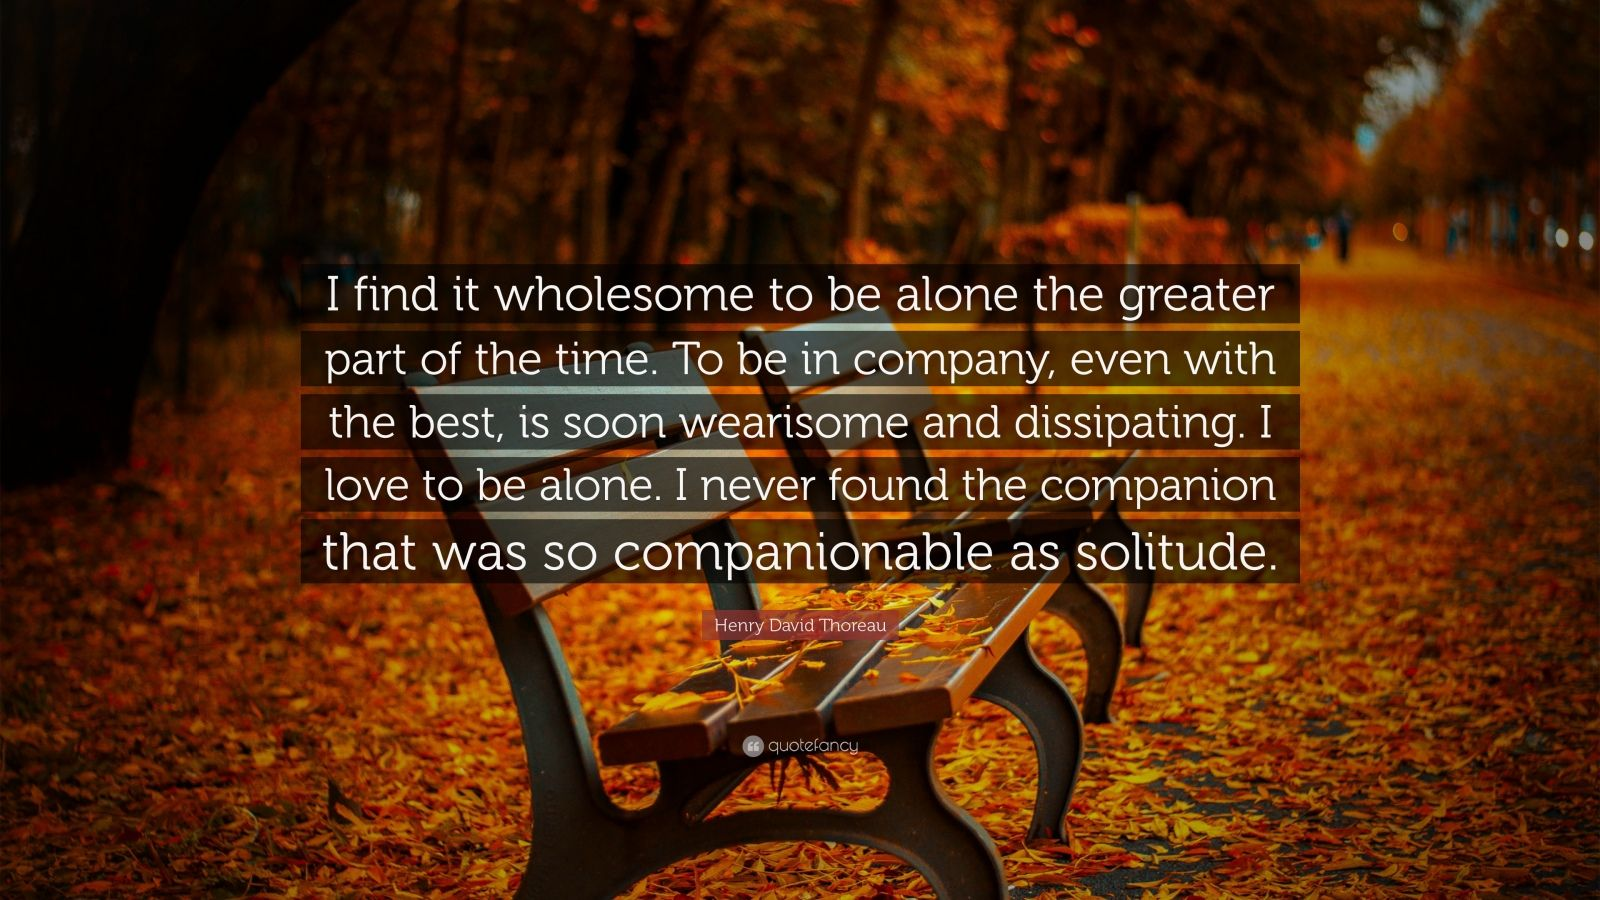 """Henry David Thoreau Quote: """"I find it wholesome to be alone the greater part of the time. To be in company, even with the best, is soon wearisome and dissipating. I love to be alone. I never found the companion that was so companionable as solitude."""""""